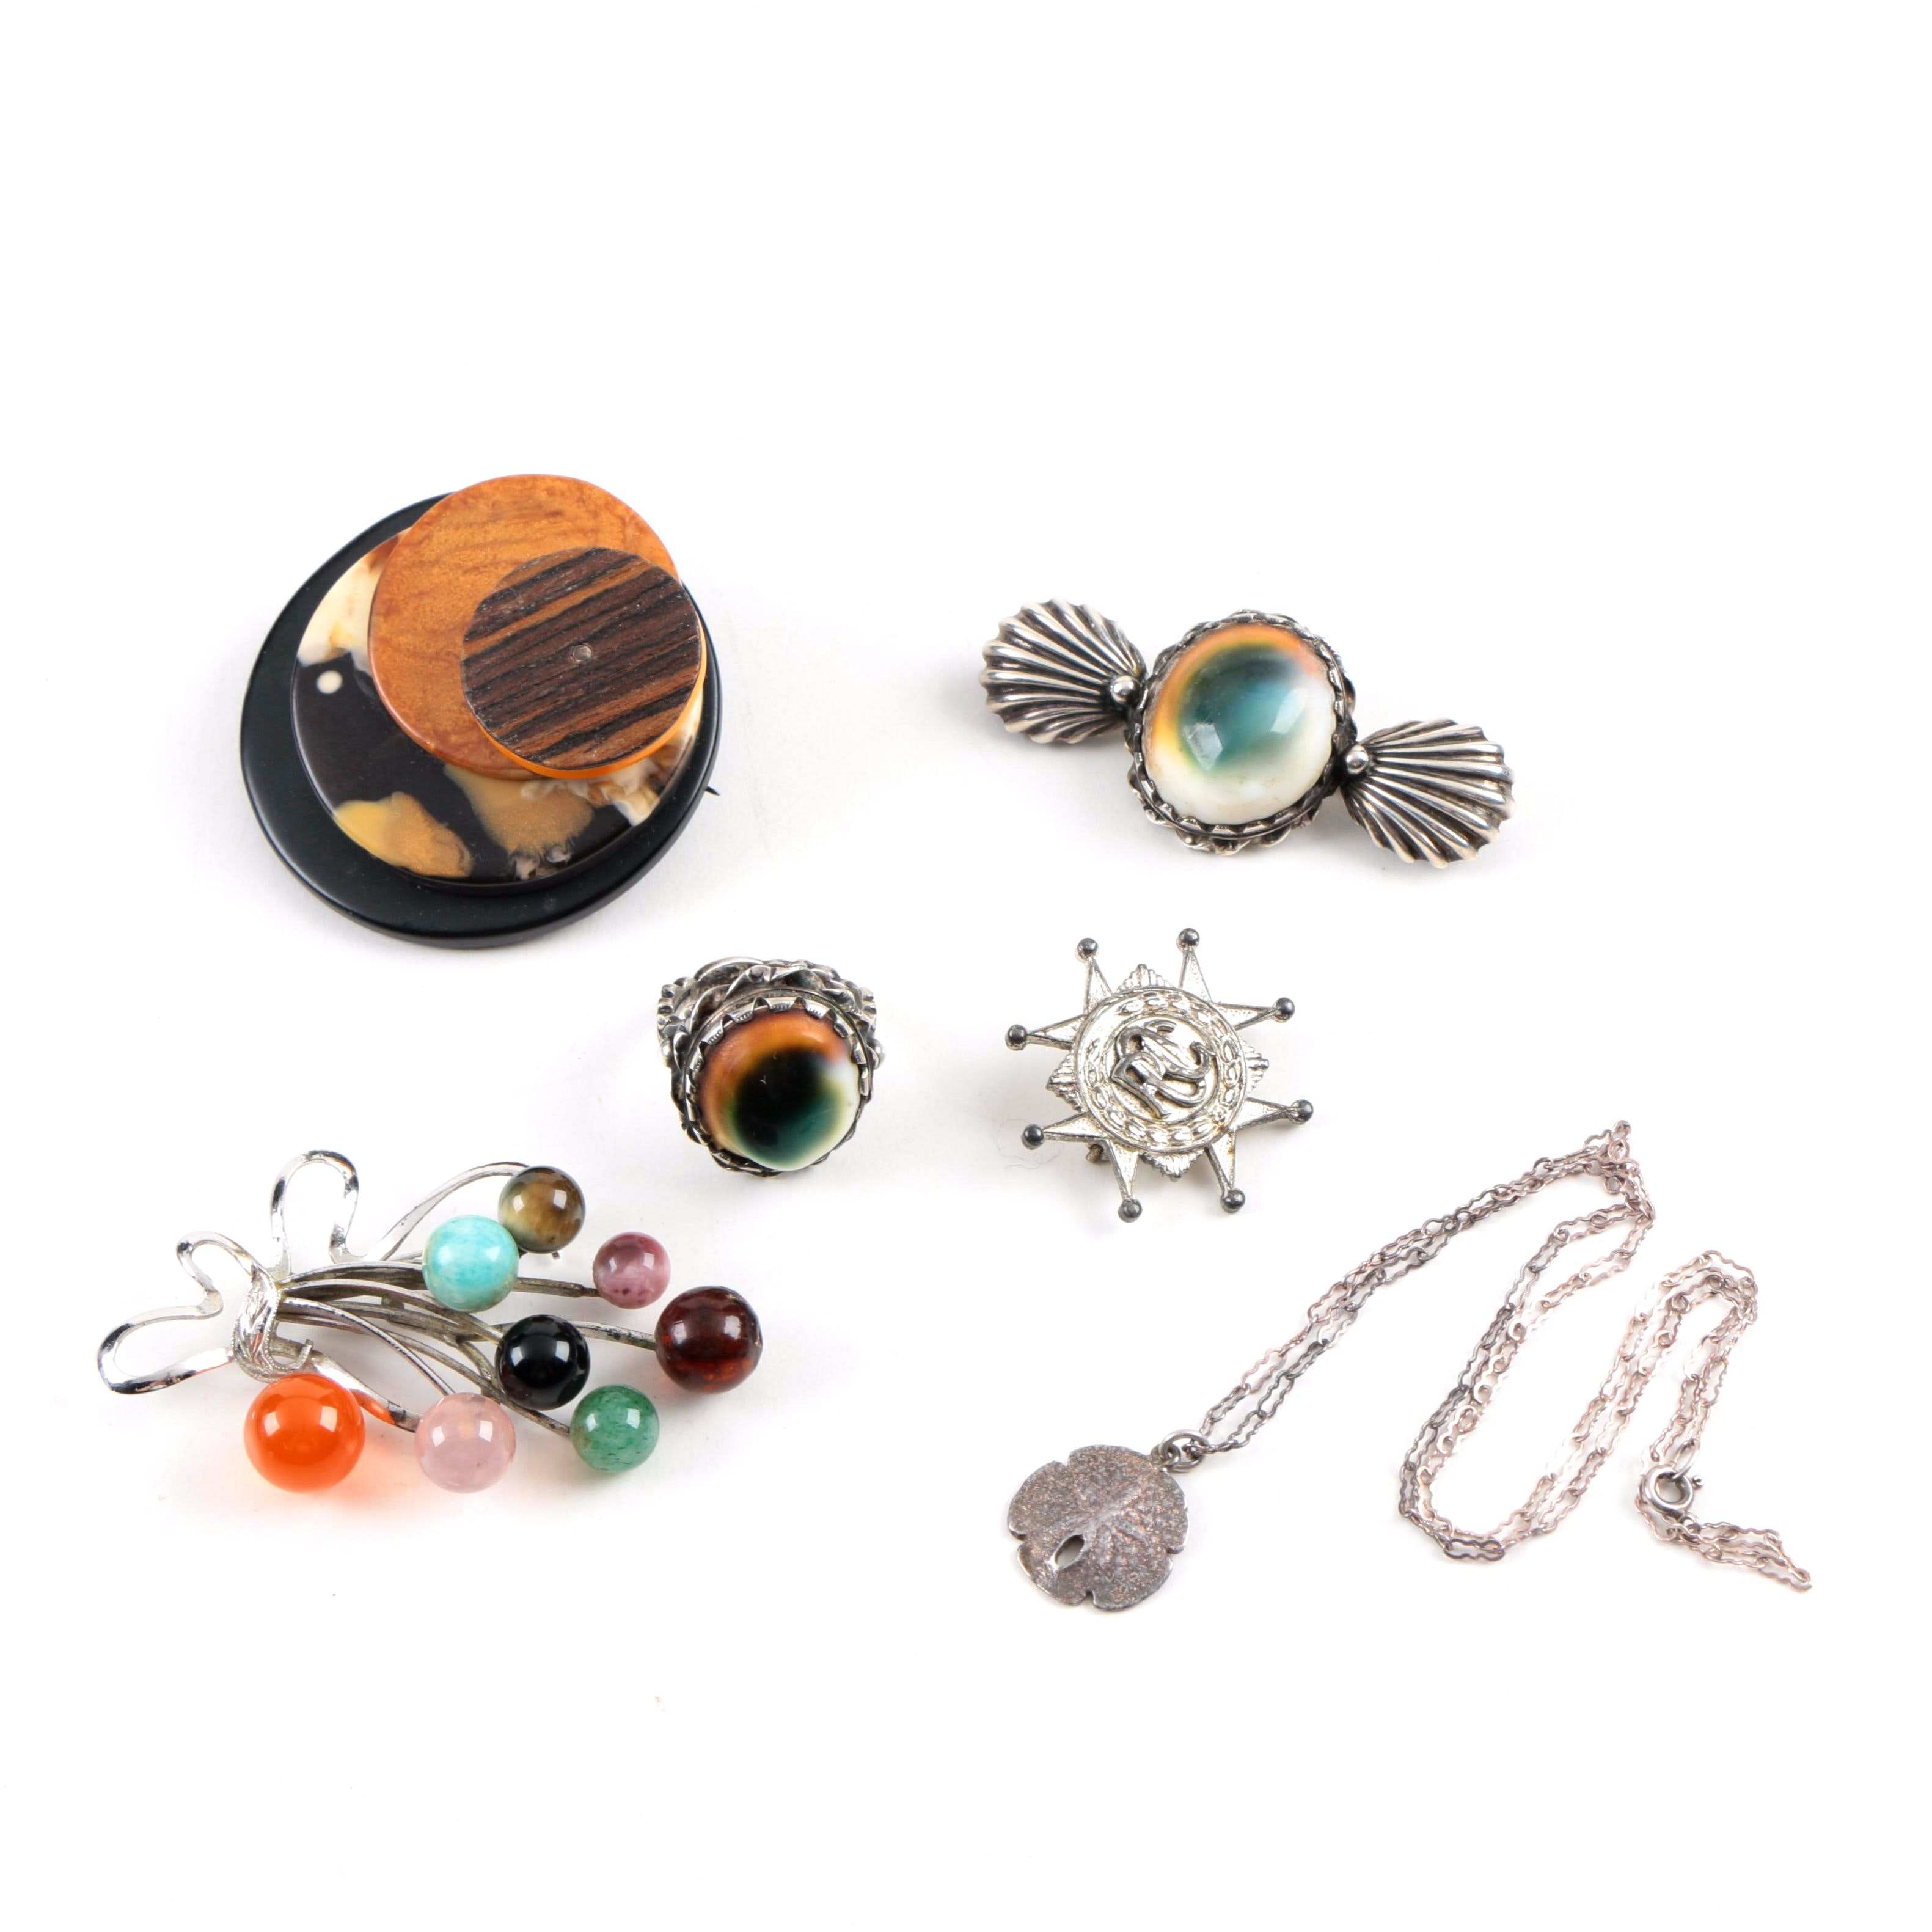 Sterling Silver Jewelry Including a Gemstone Brooch